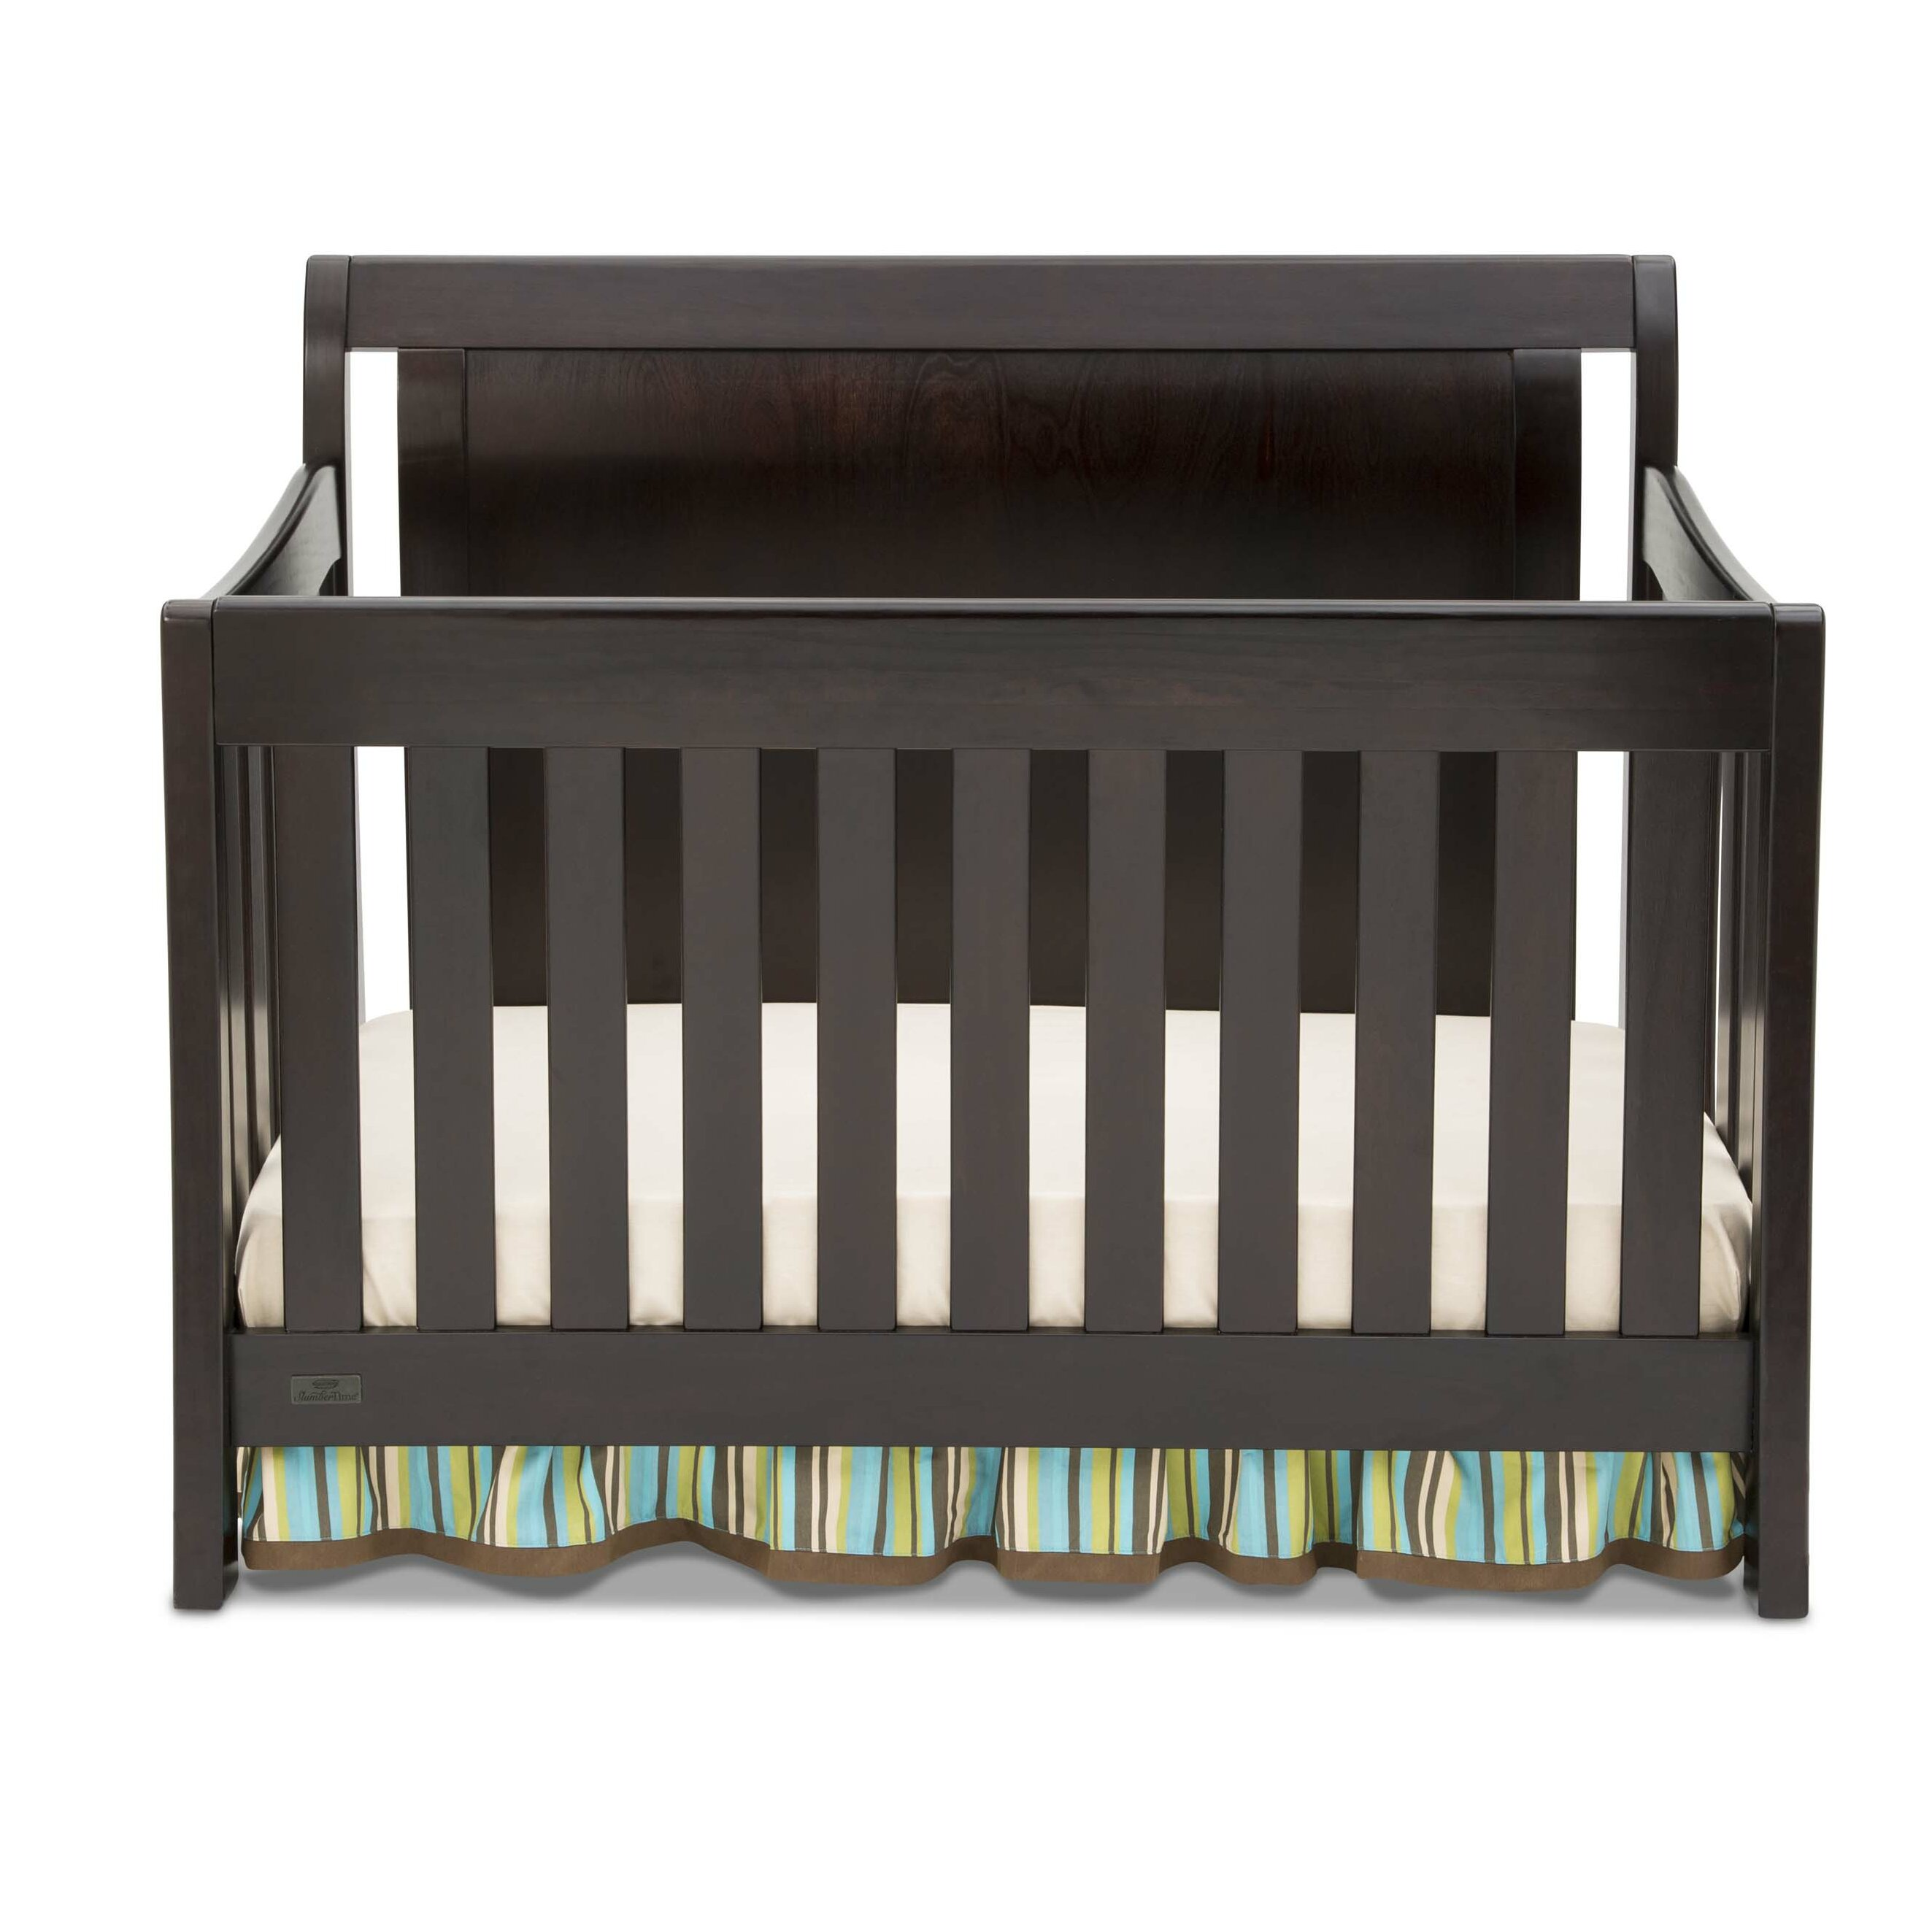 Simmons Kids Slumber Time Madisson Crib 'N' More & Reviews ...